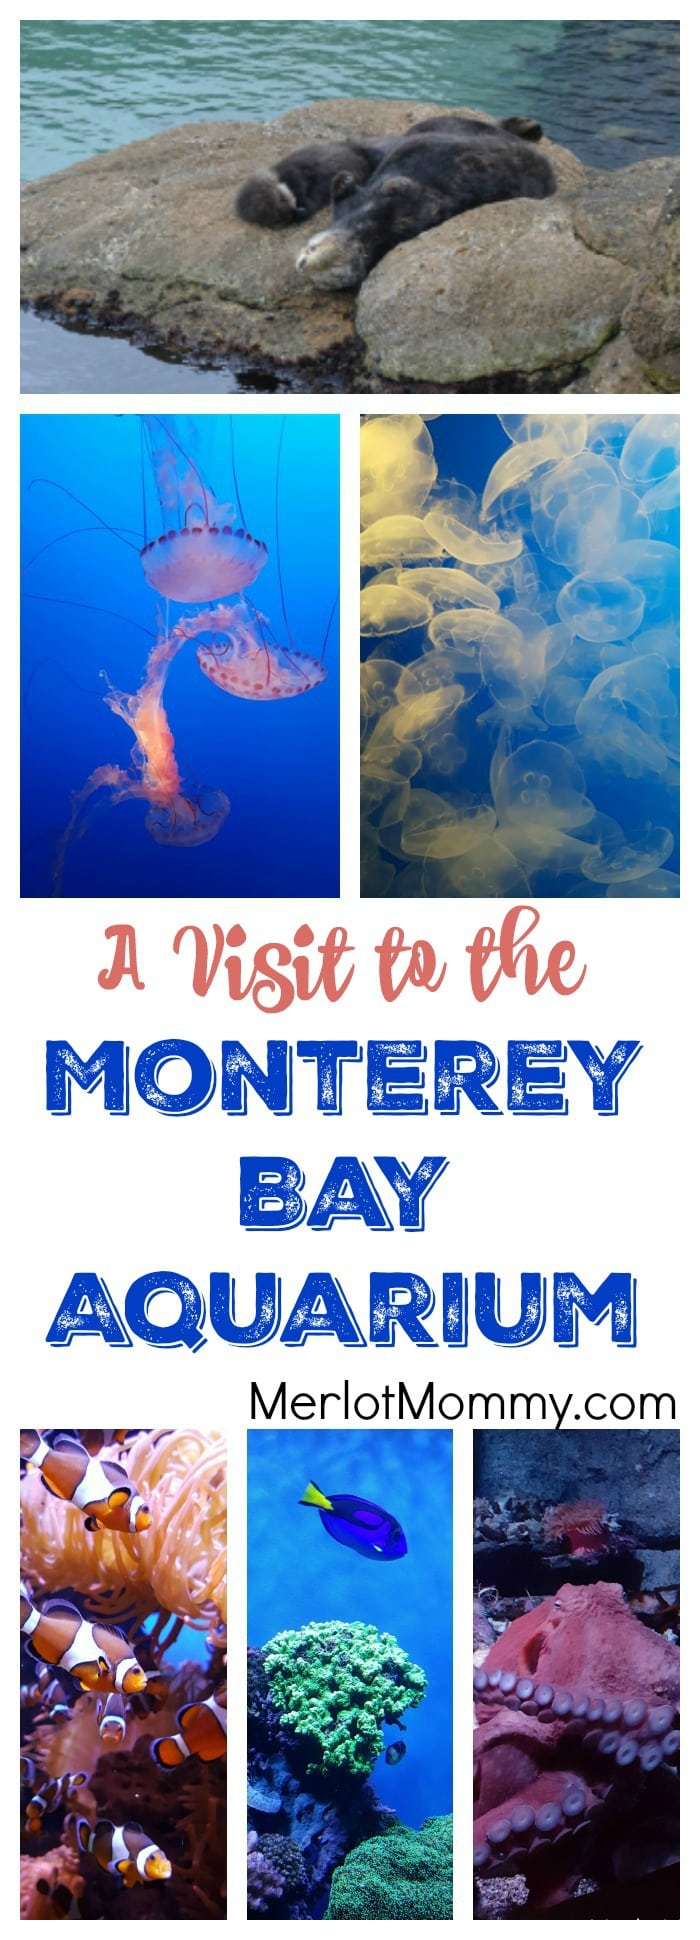 A Visit to the Monterey Bay Aquarium for Finding Dory